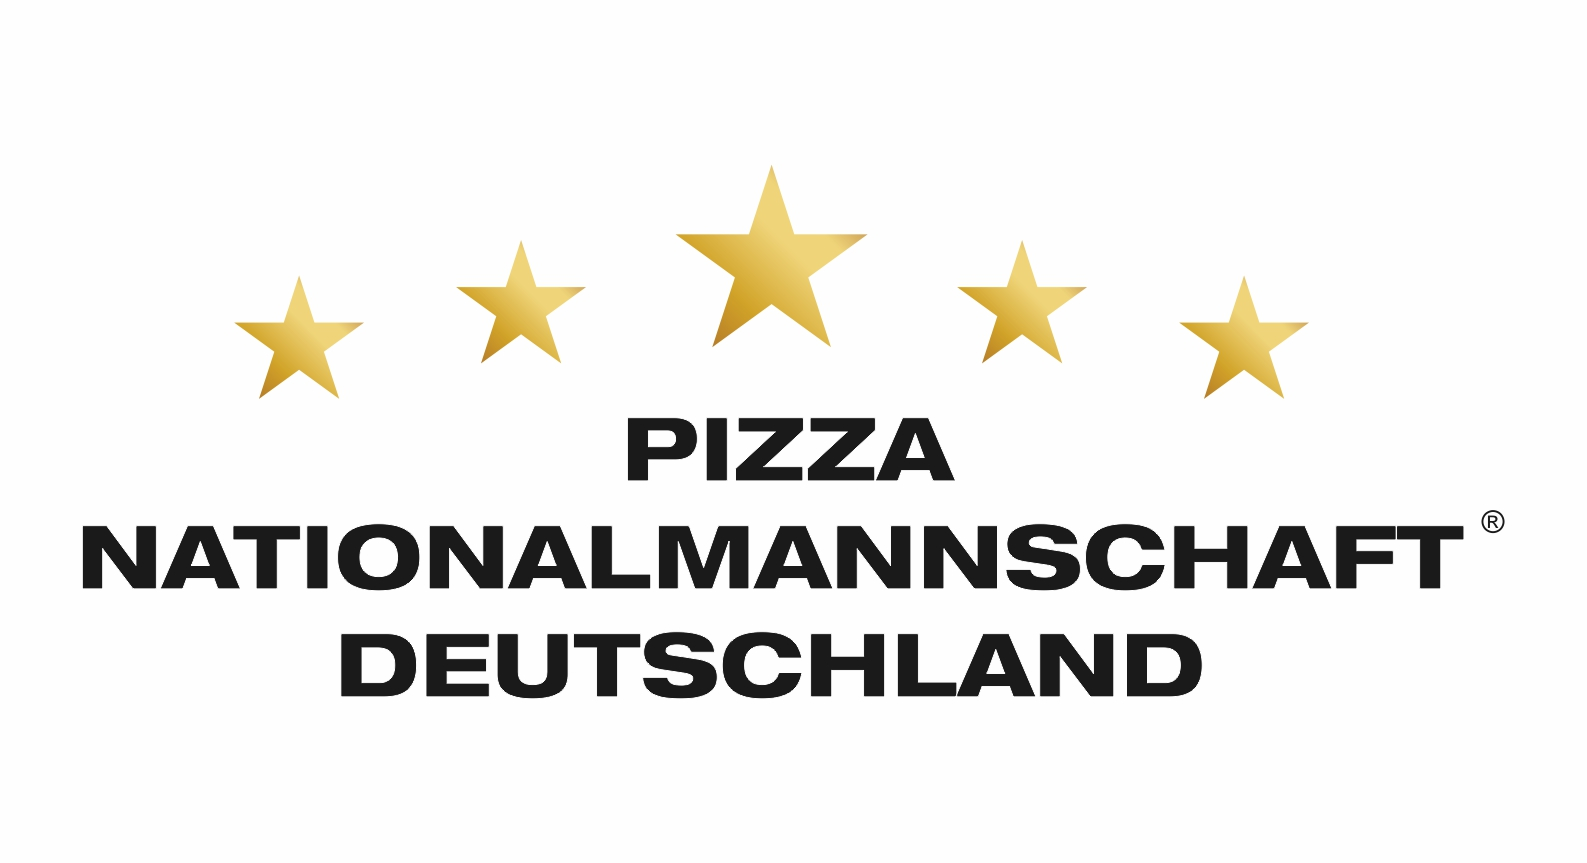 Pizza Nationalmannschaft